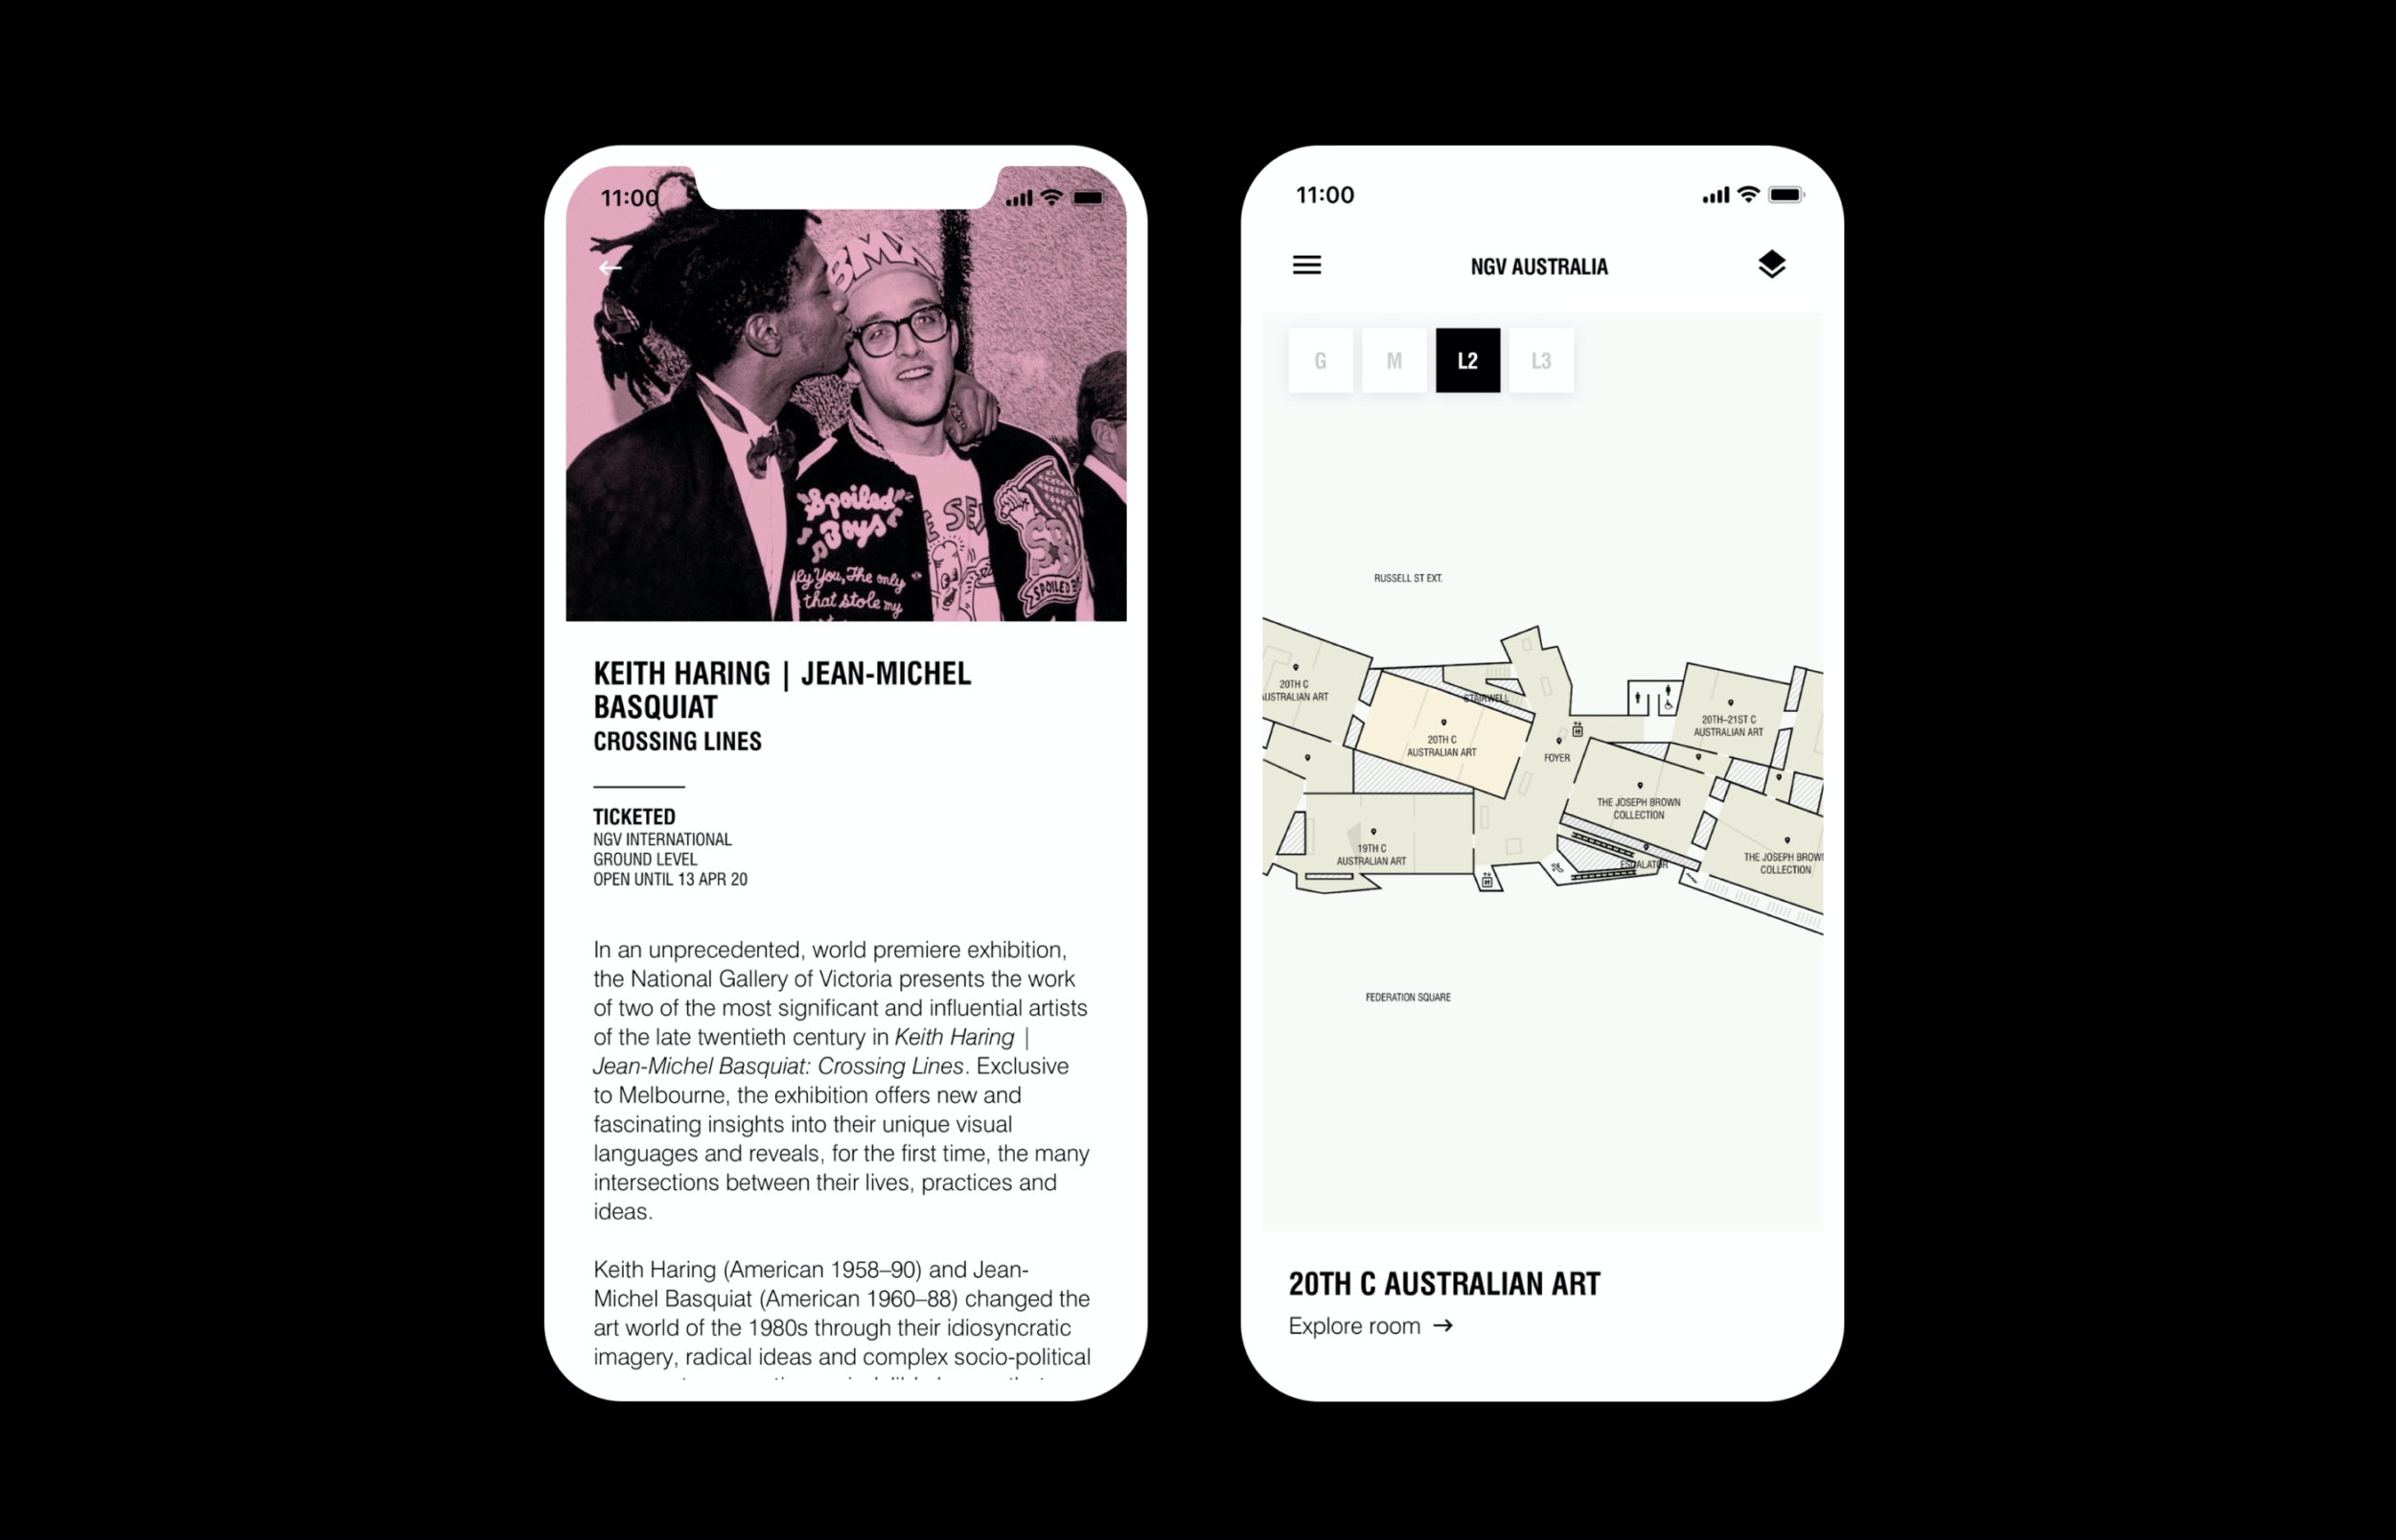 Keith Haring and Jean Michel Basquait exhibition shown on Mobile iOS app for National Gallery of Victoria NGV